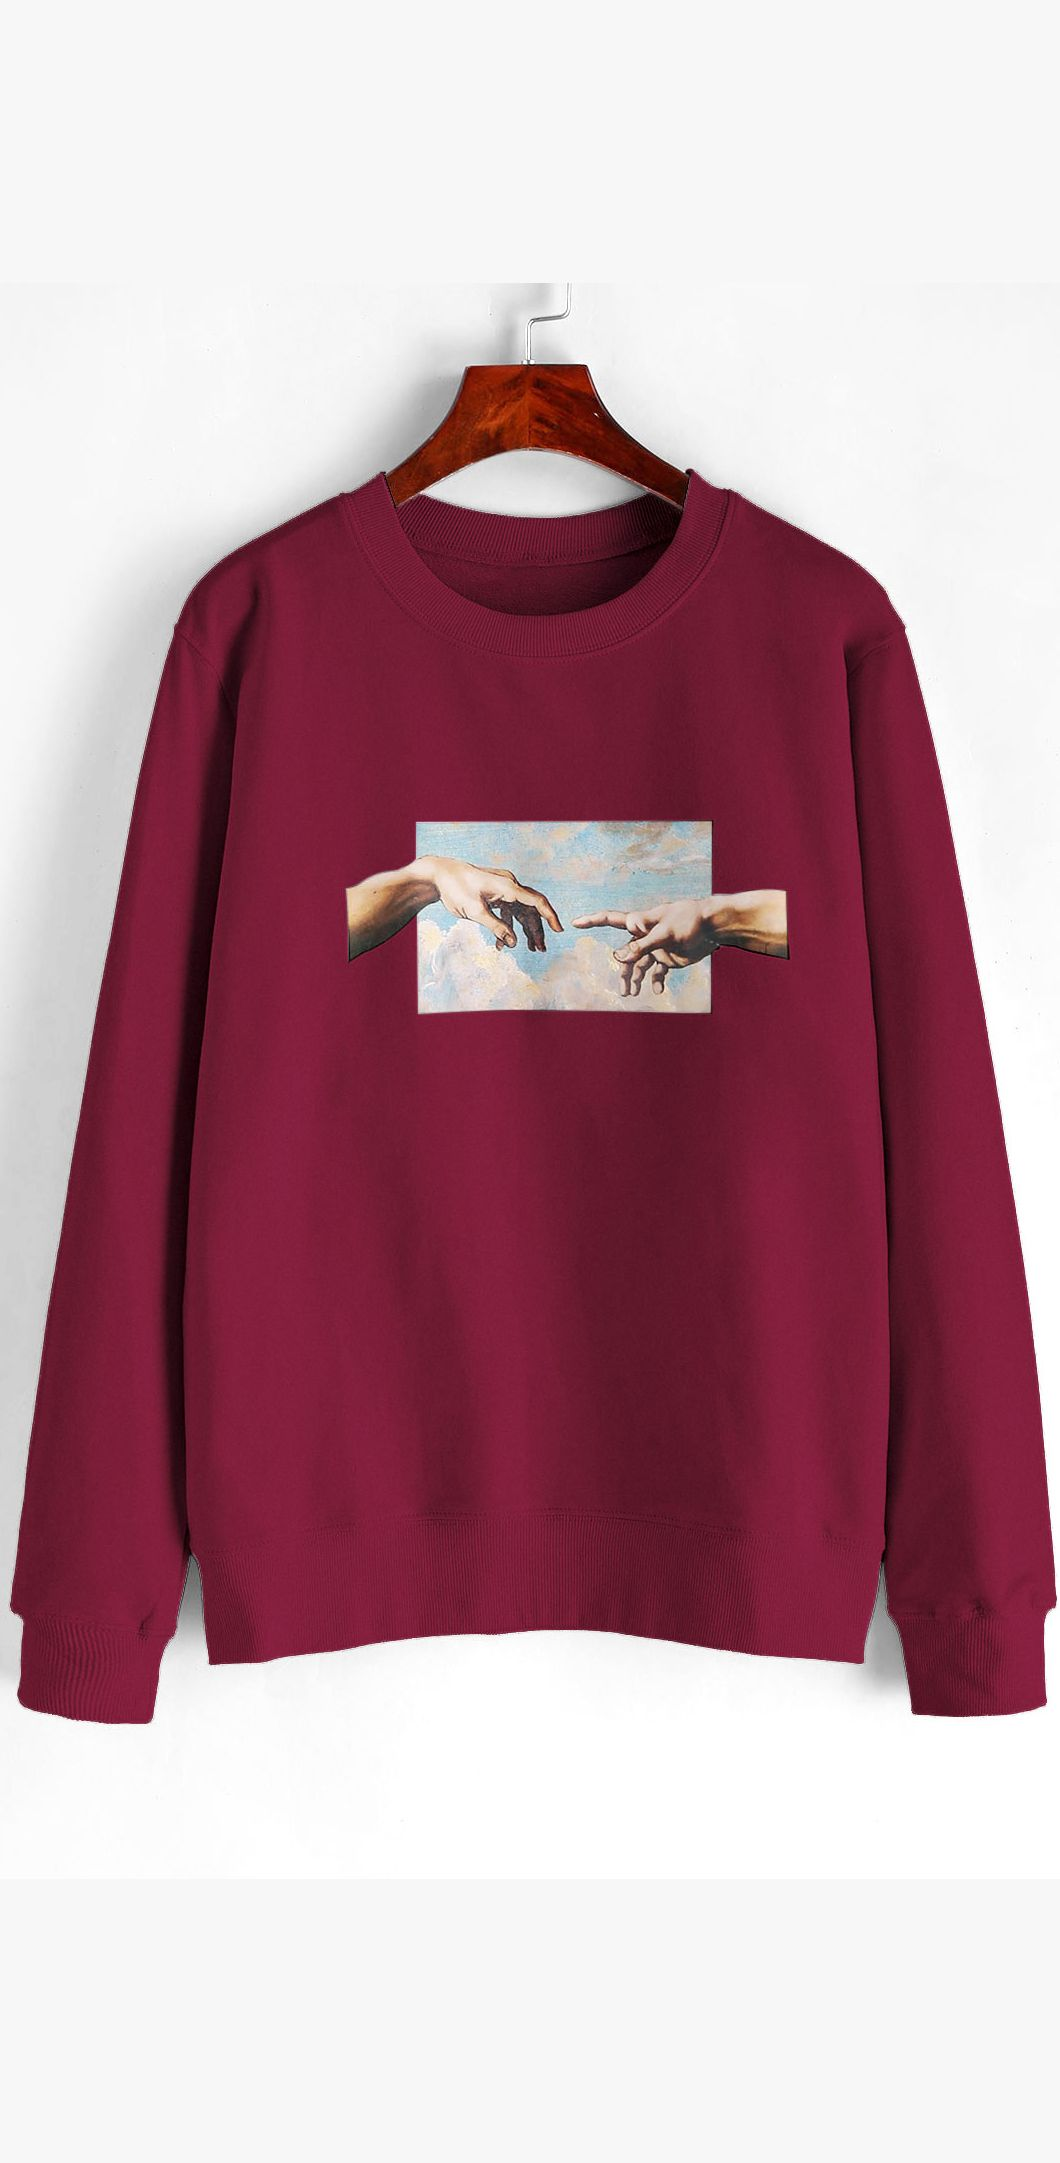 Hand Graphic French Terry Basic Sweatshirt Sweatshirts Clothes Hoodie Sweatshirts Outfit [ 2163 x 1060 Pixel ]